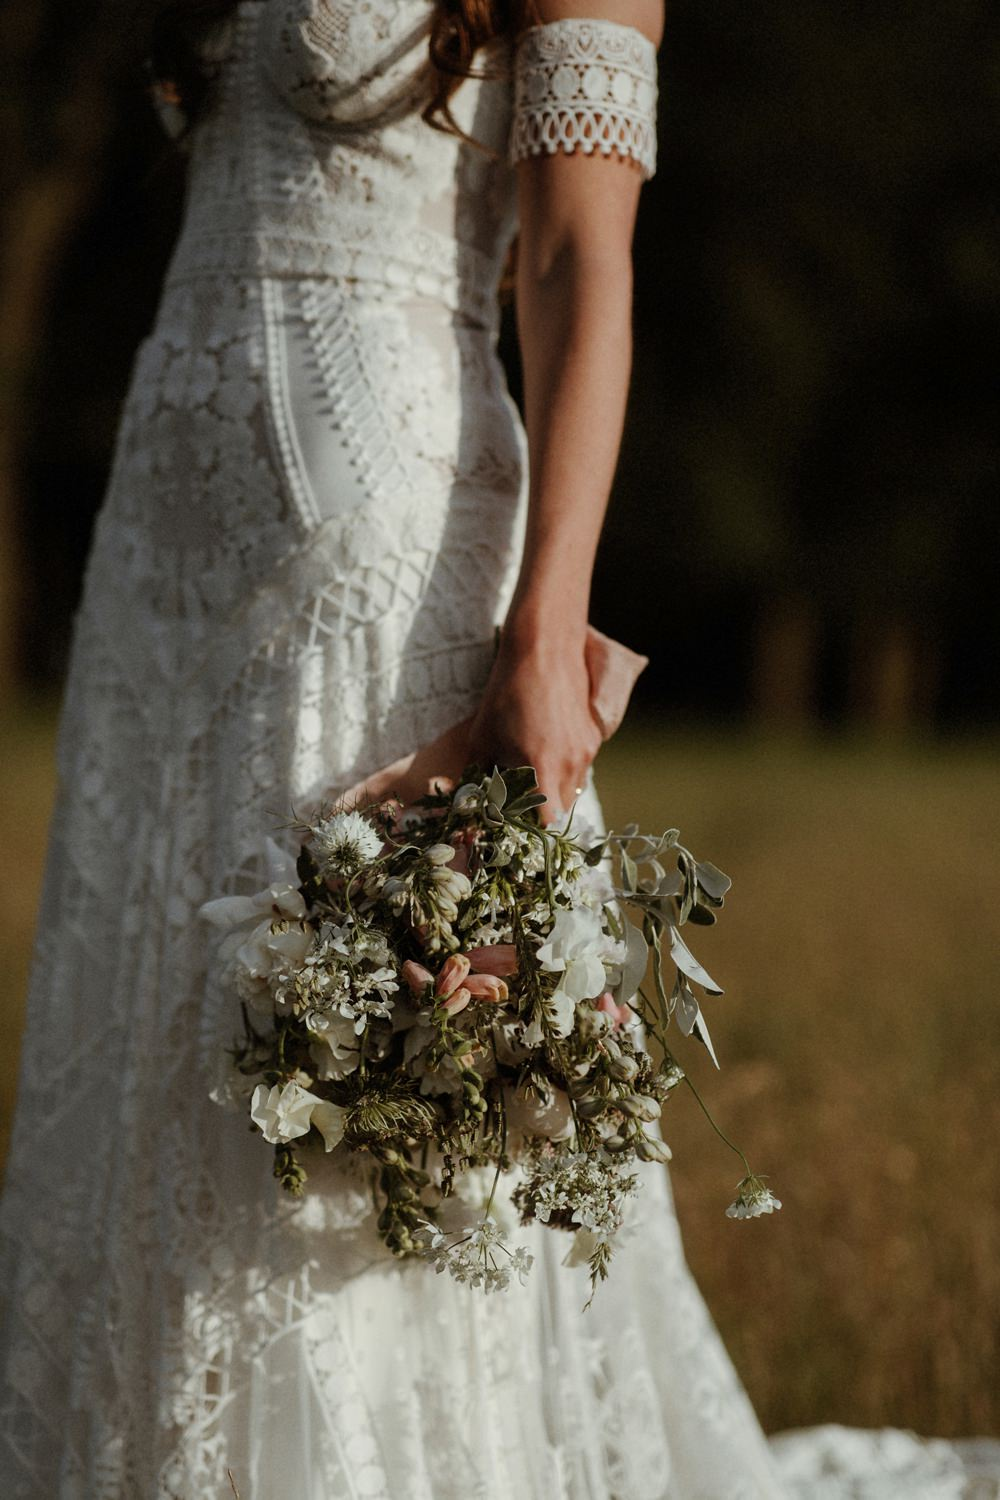 Bride Bridal Bouquet Flowers White Greenery Pink Ribbon Outdoor Wedding UK Olivia and Dan Photography